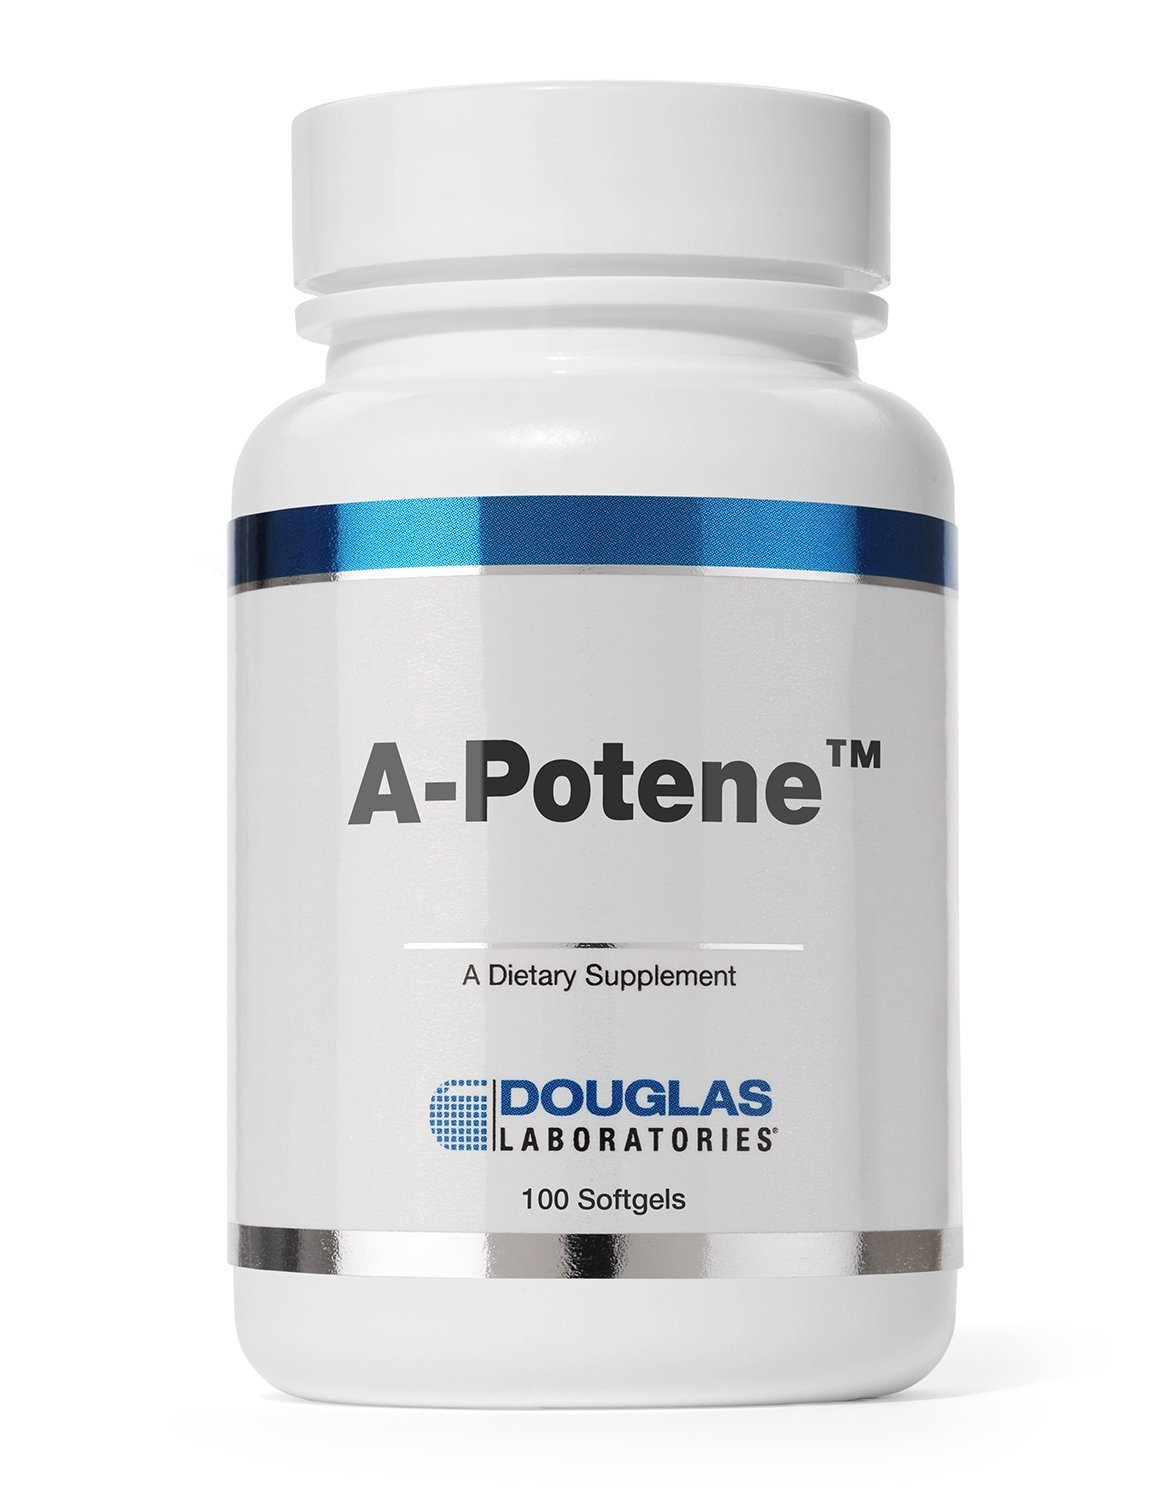 Douglas Laboratories® - A-Potene - Beta-Carotene Supplement for Antioxidants and Immune Support* - 100 Capsules